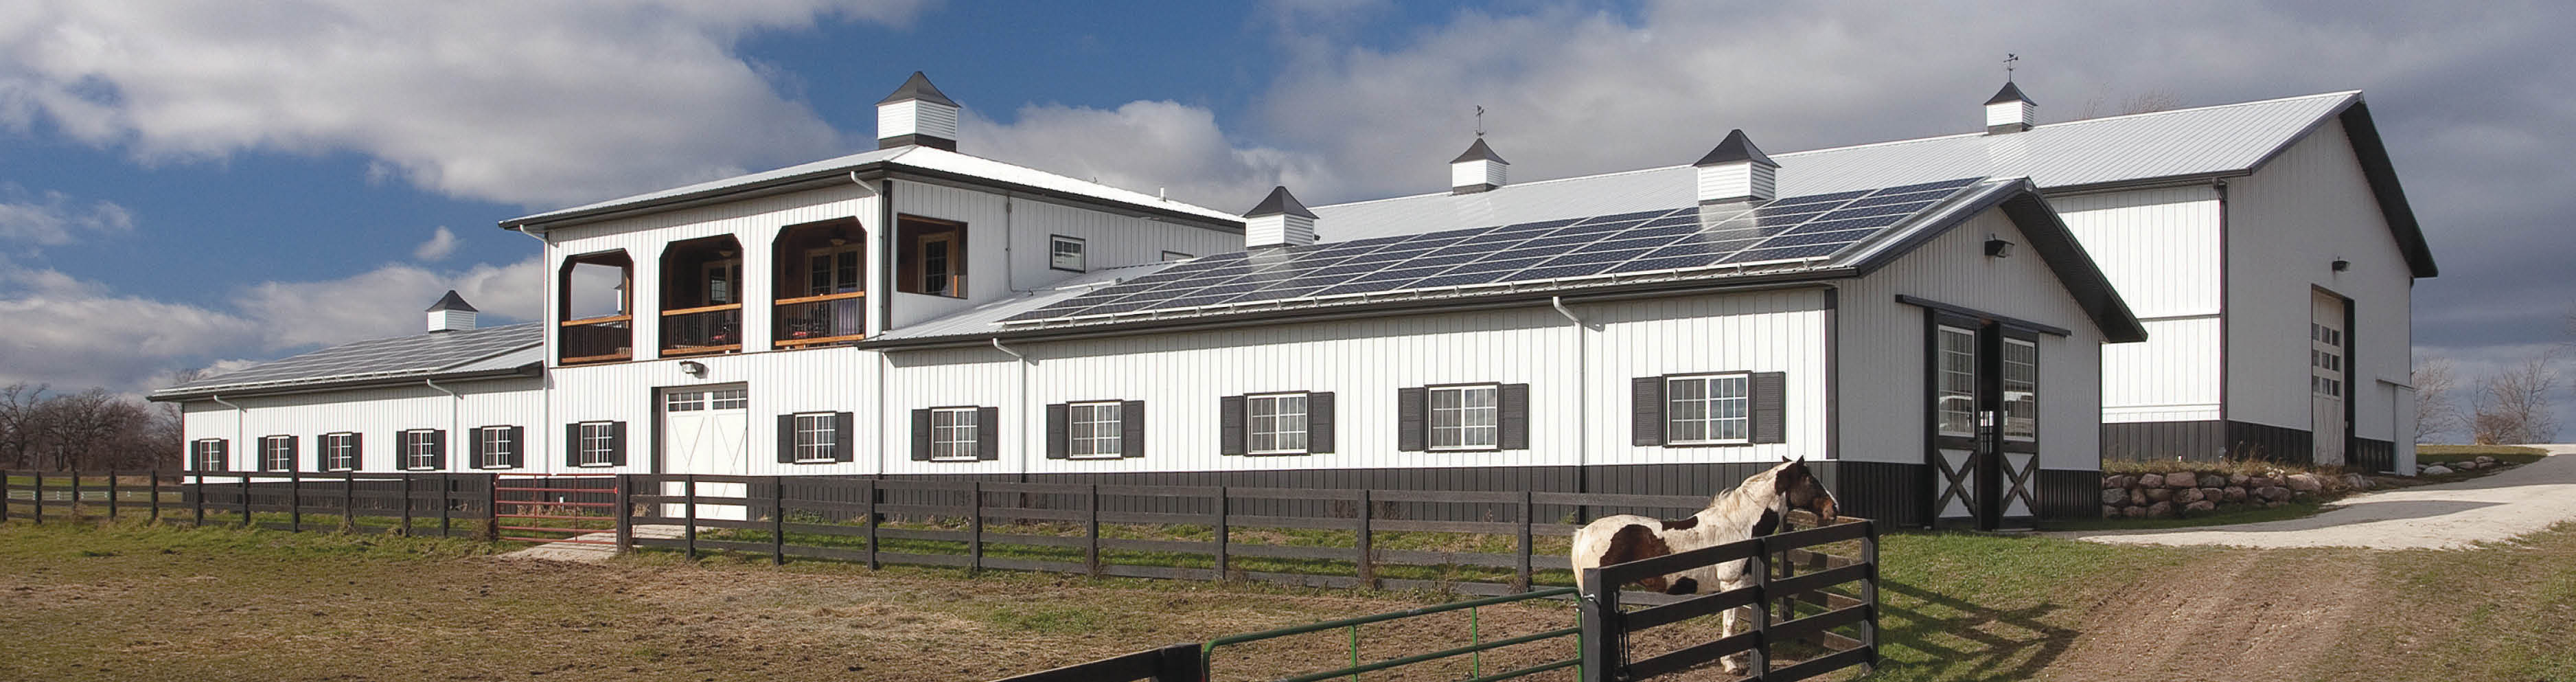 Build Your Dream Horse Barn Our Top 5 Designs In 2020